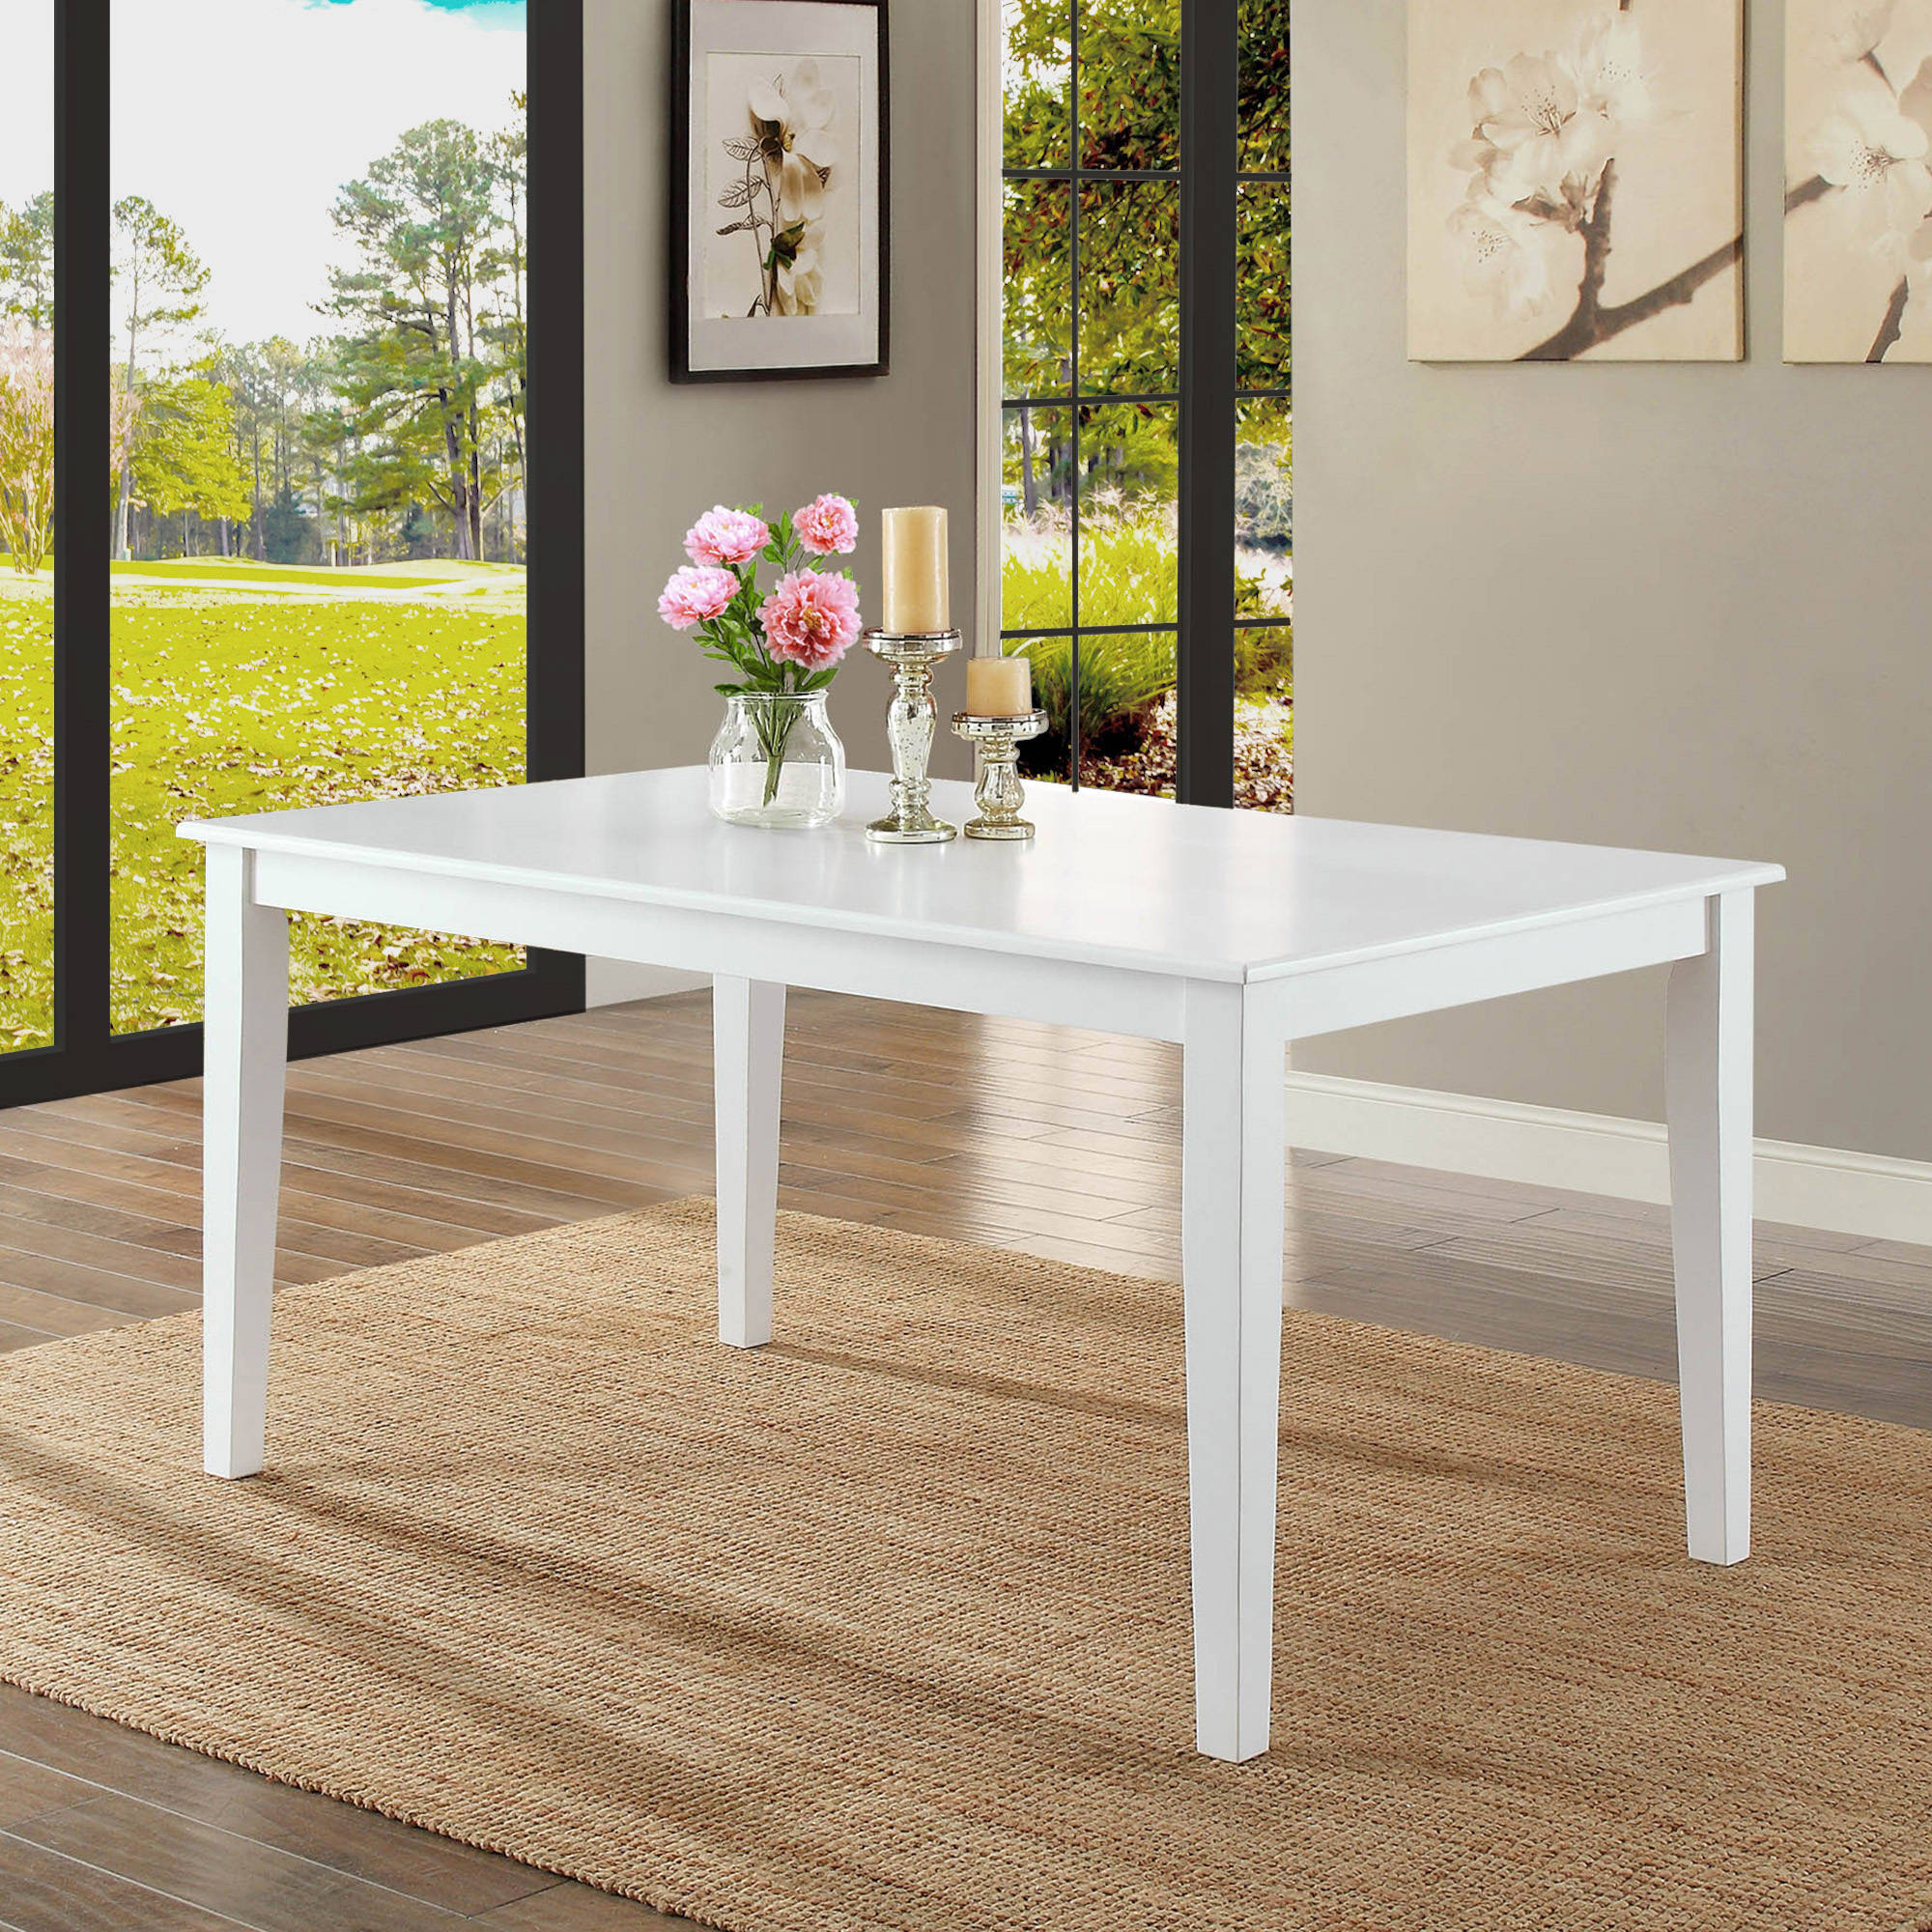 Better Homes and Gardens Bankston Dining Table, White by WHALEN LIMITED